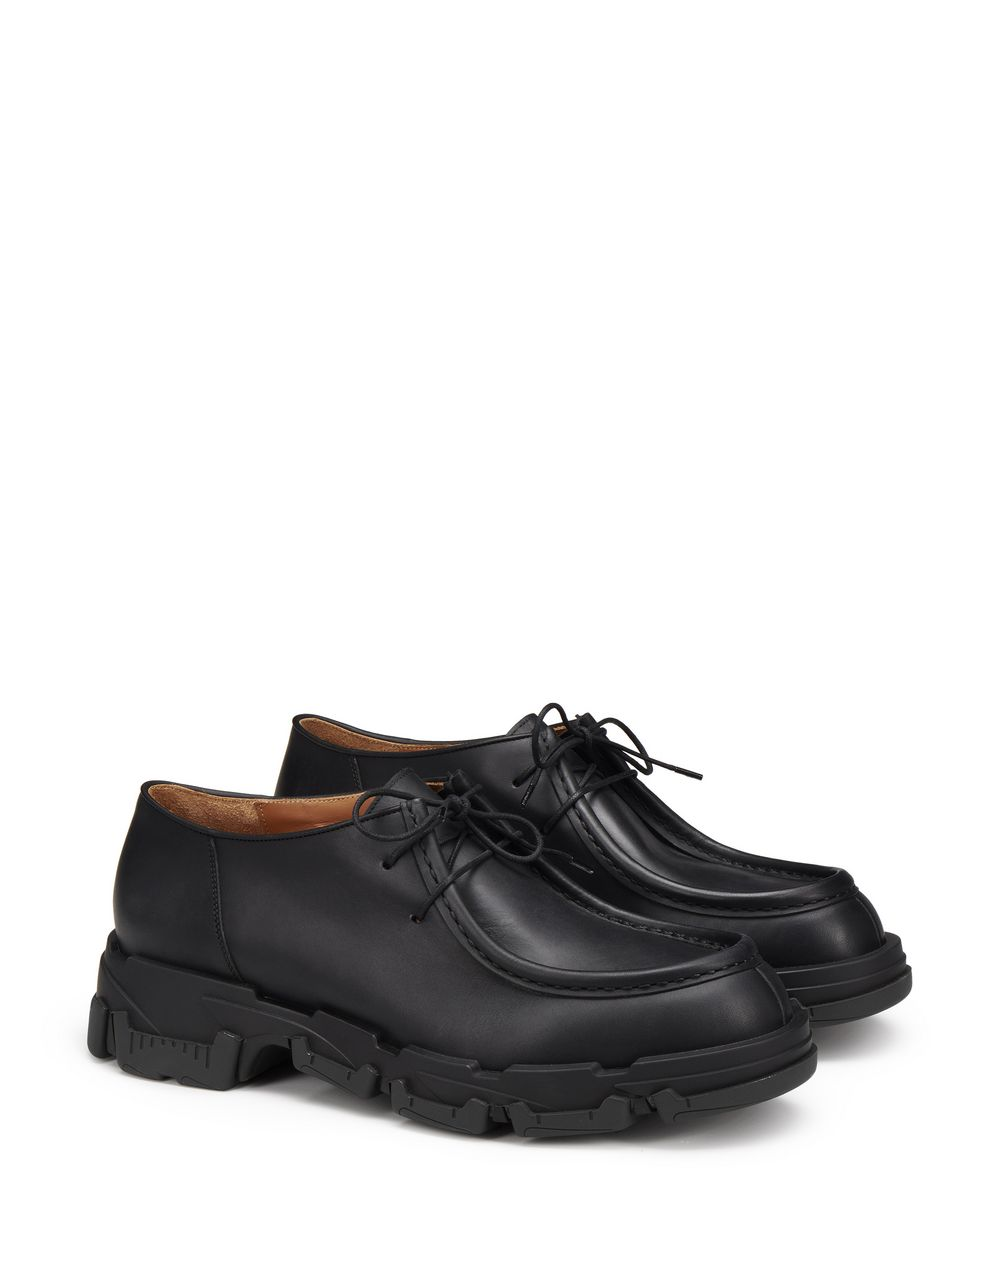 MATTE CALFSKIN LEATHER EXPLORER DERBY SHOES WITH THIN LACES - Lanvin